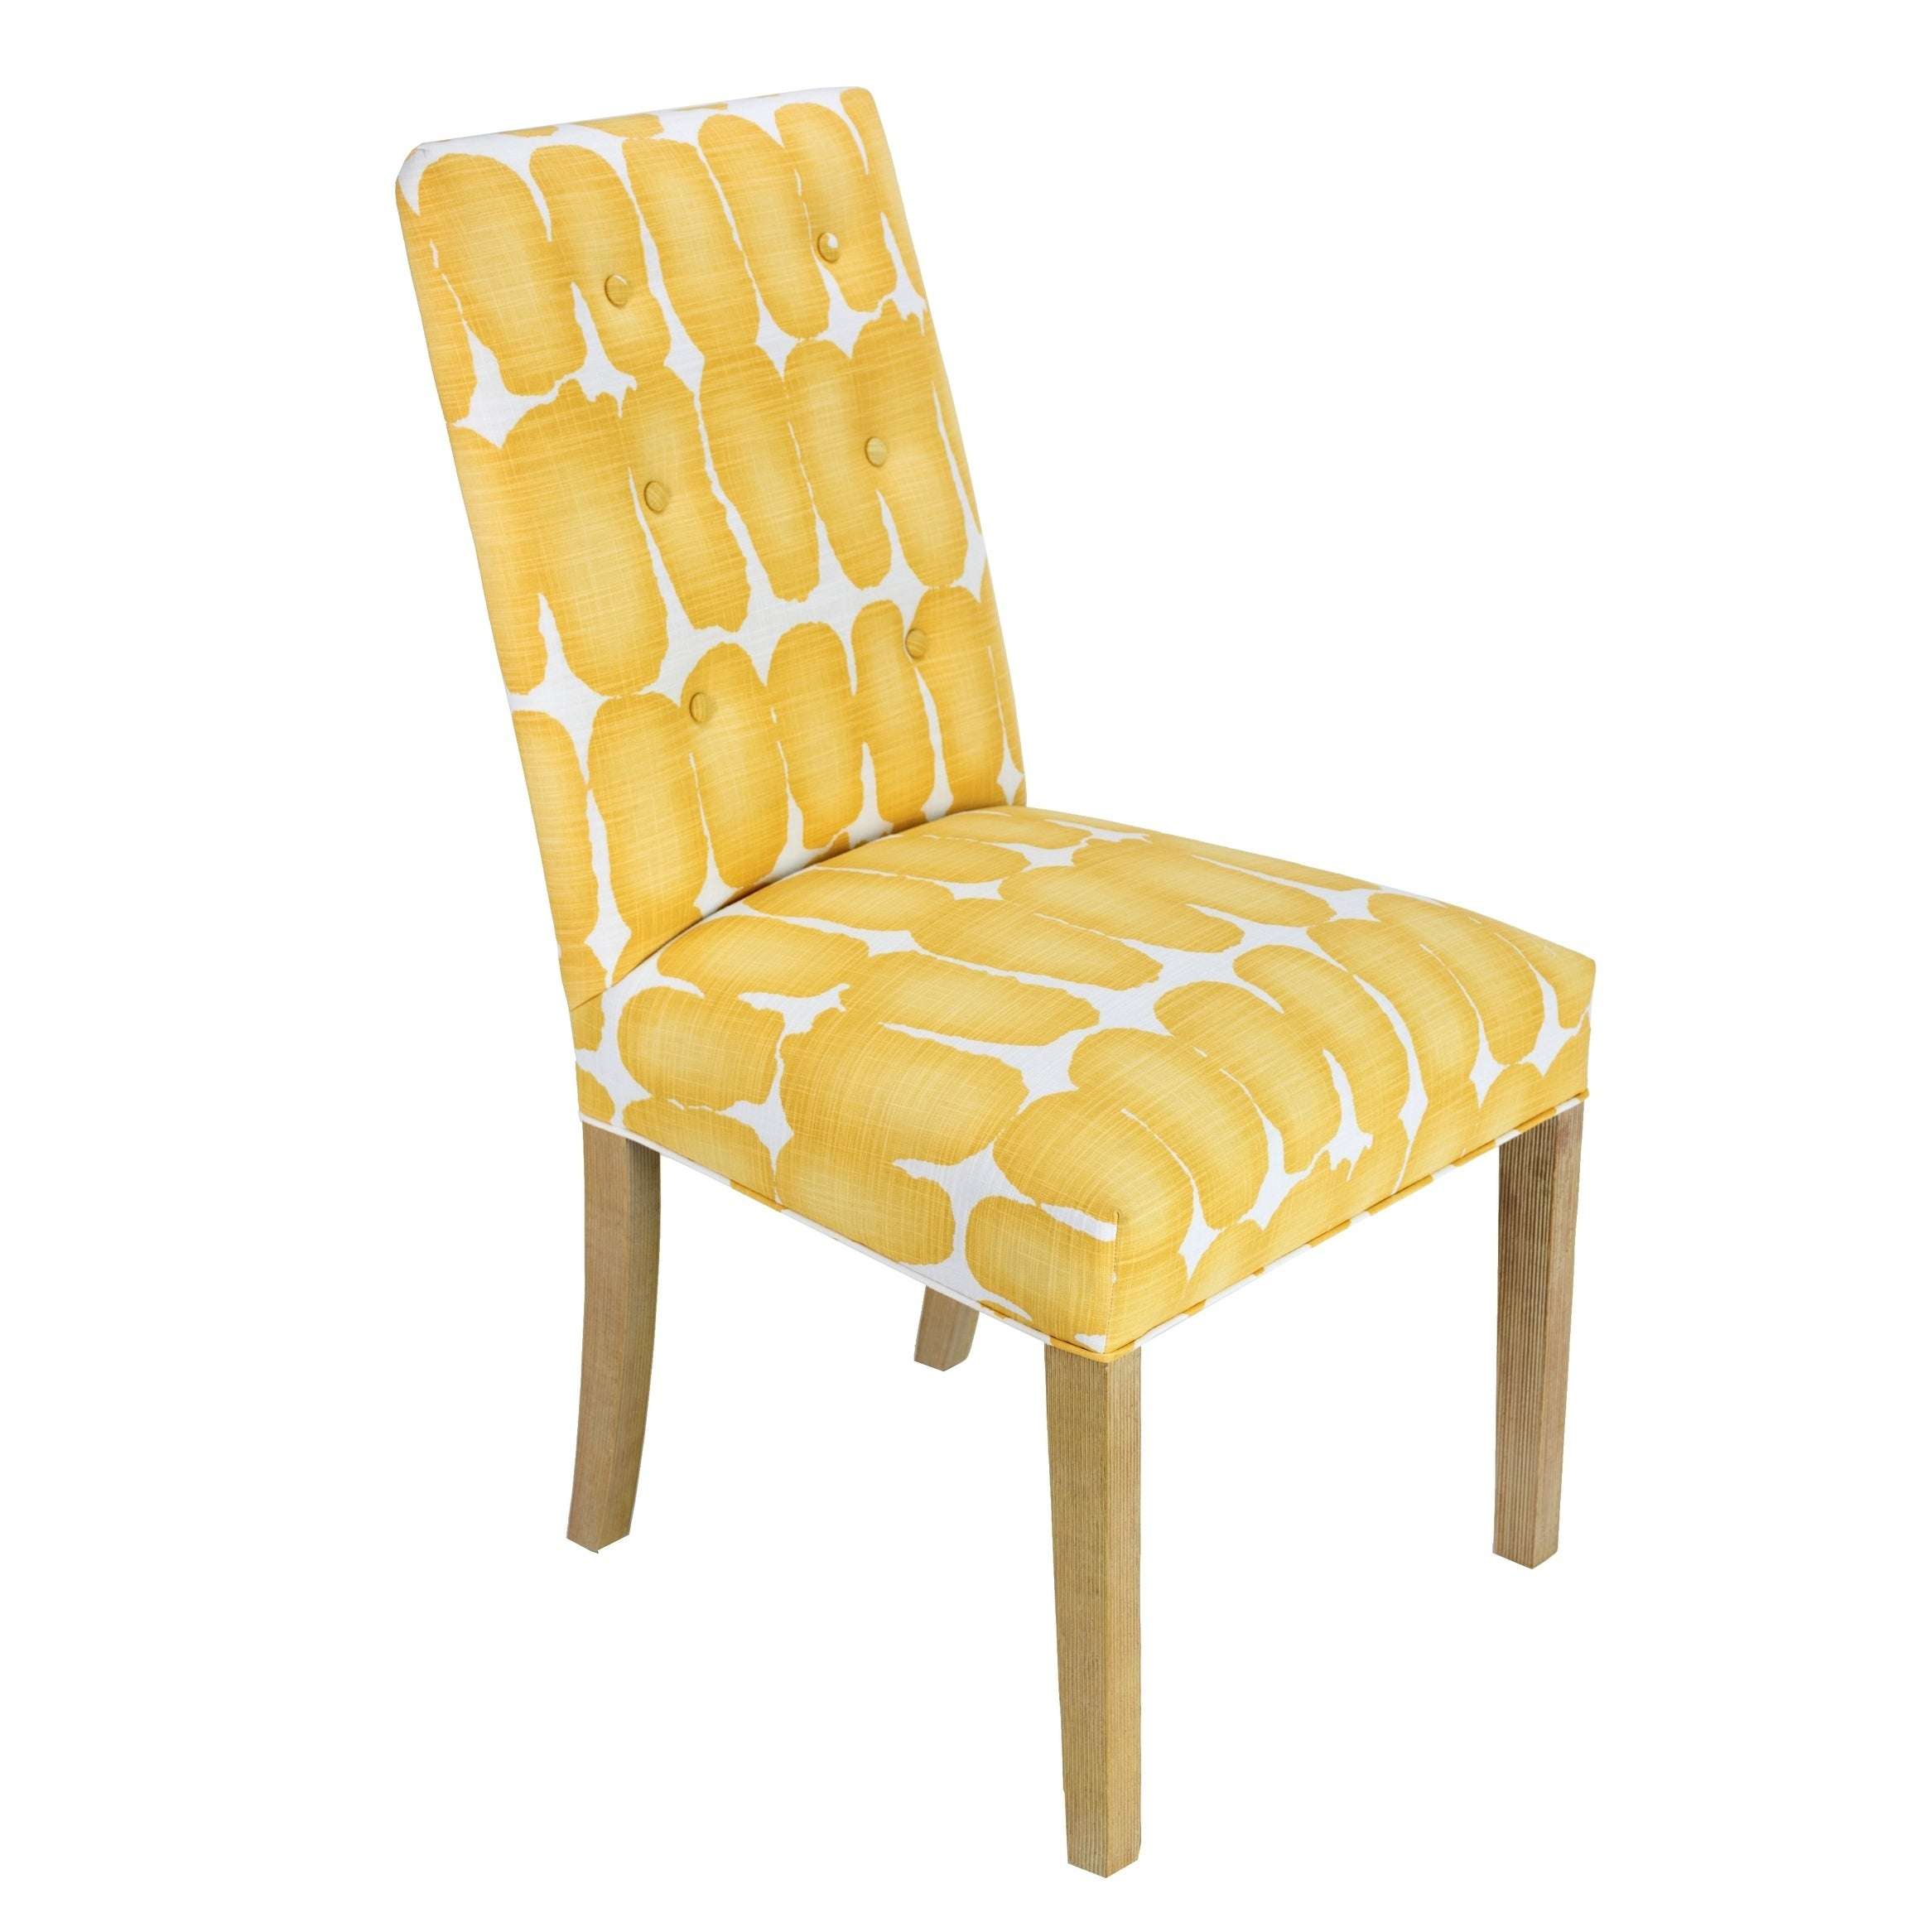 fullsizerender ladder straight rail category product back chairs chair